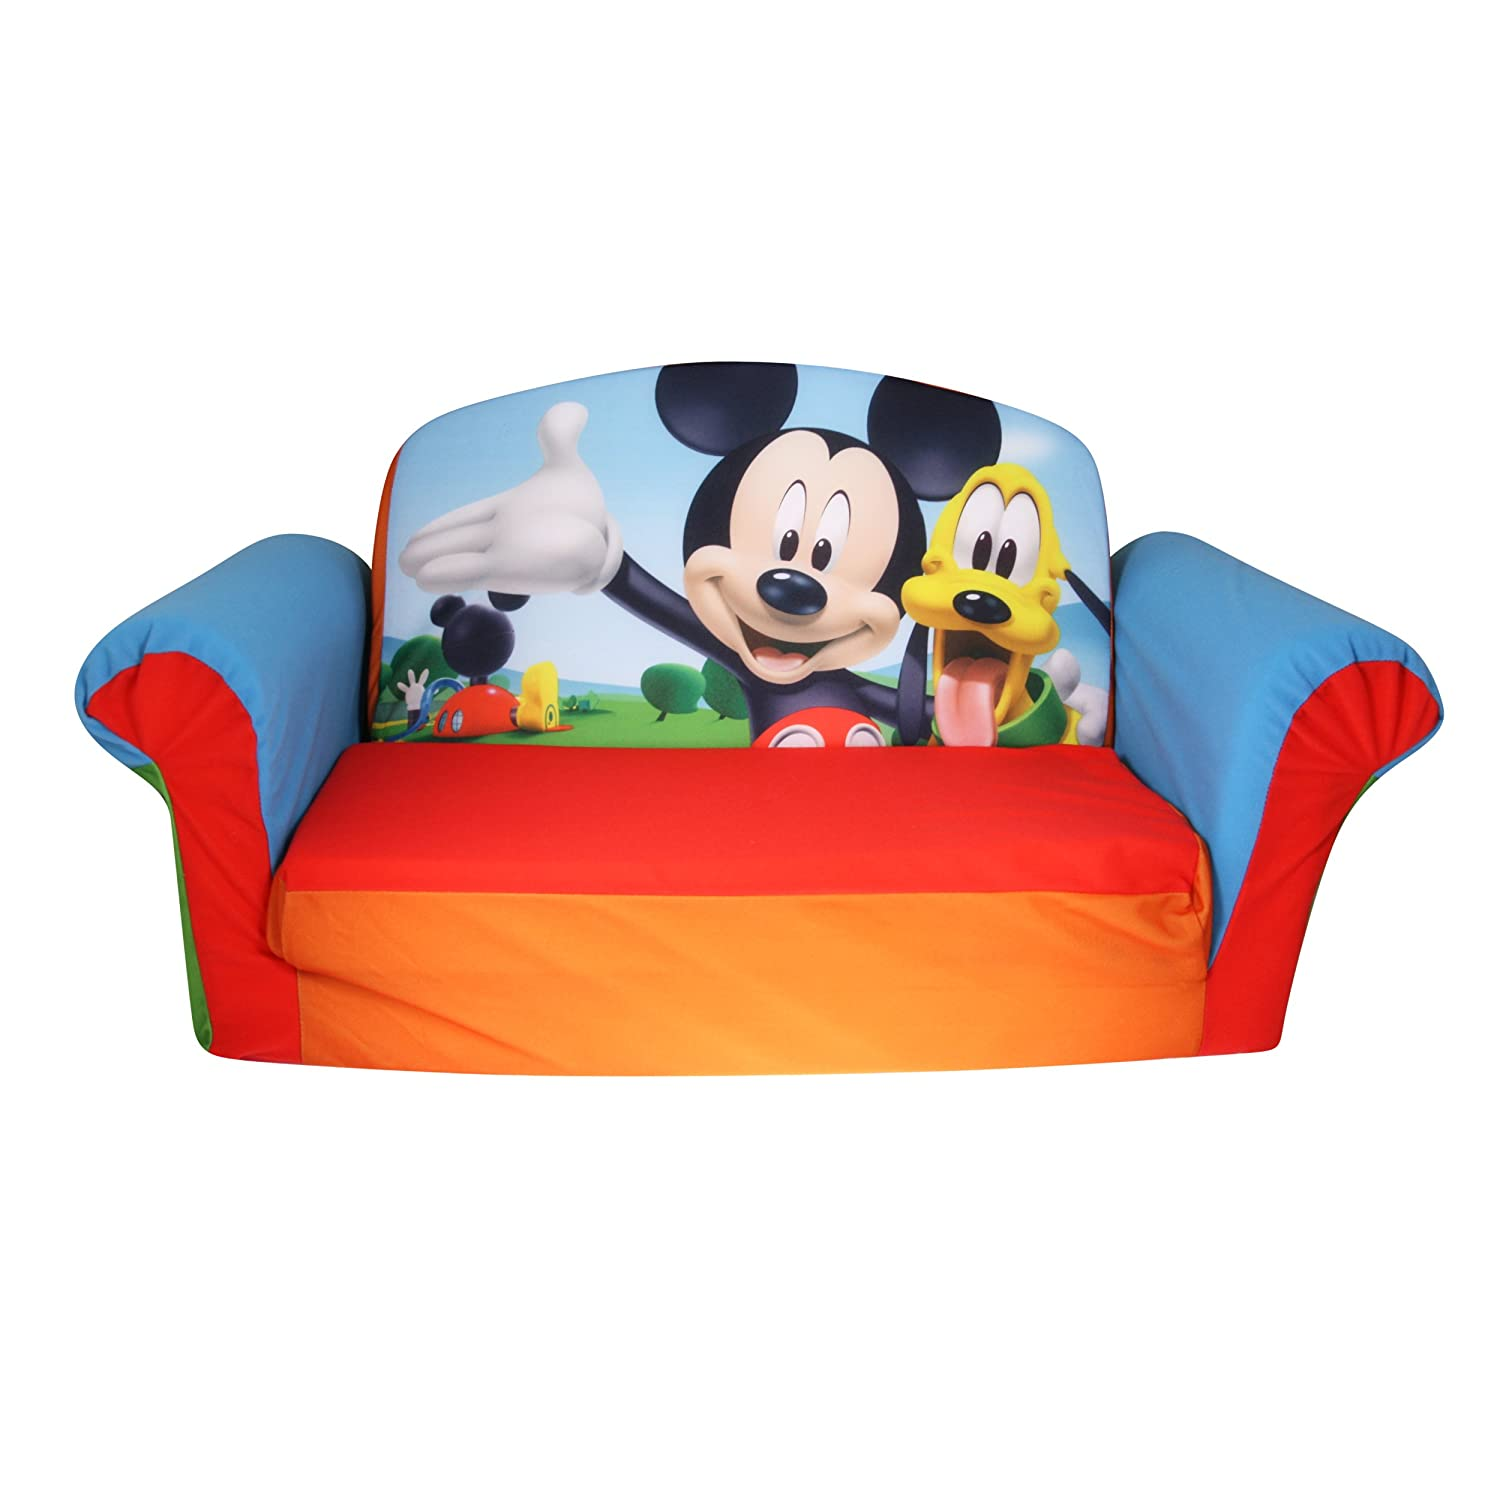 Marshmallow Furniture, Children's Upholstered 2 in 1 Flip Open Sofa, Mickey Mouse Club, by Spin Master